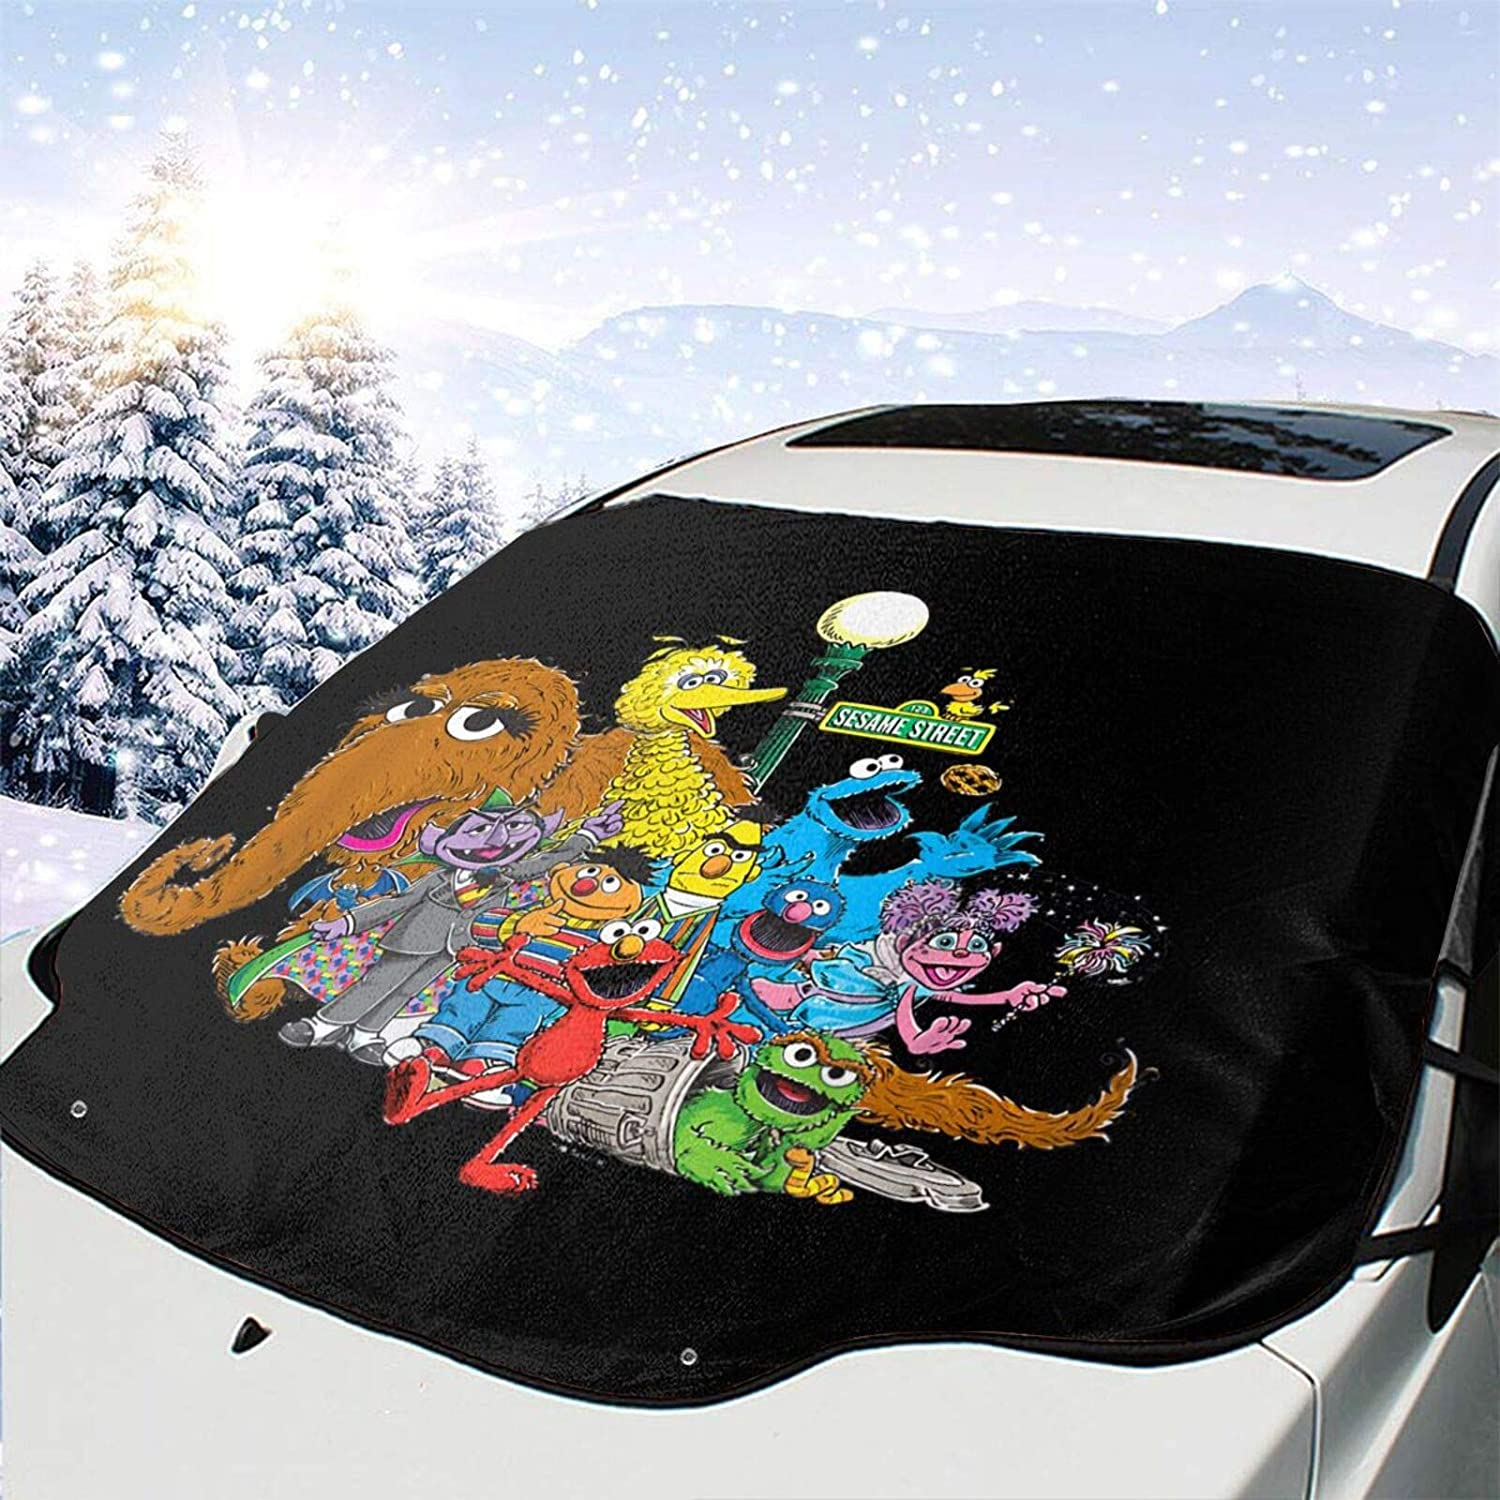 Namikshop Sesame Street Squad Windshield Snow Cover, Windshield Shade Cover with 4 Layers Protection, Car Windshield Snow Cover for Ice, Snow and Frost